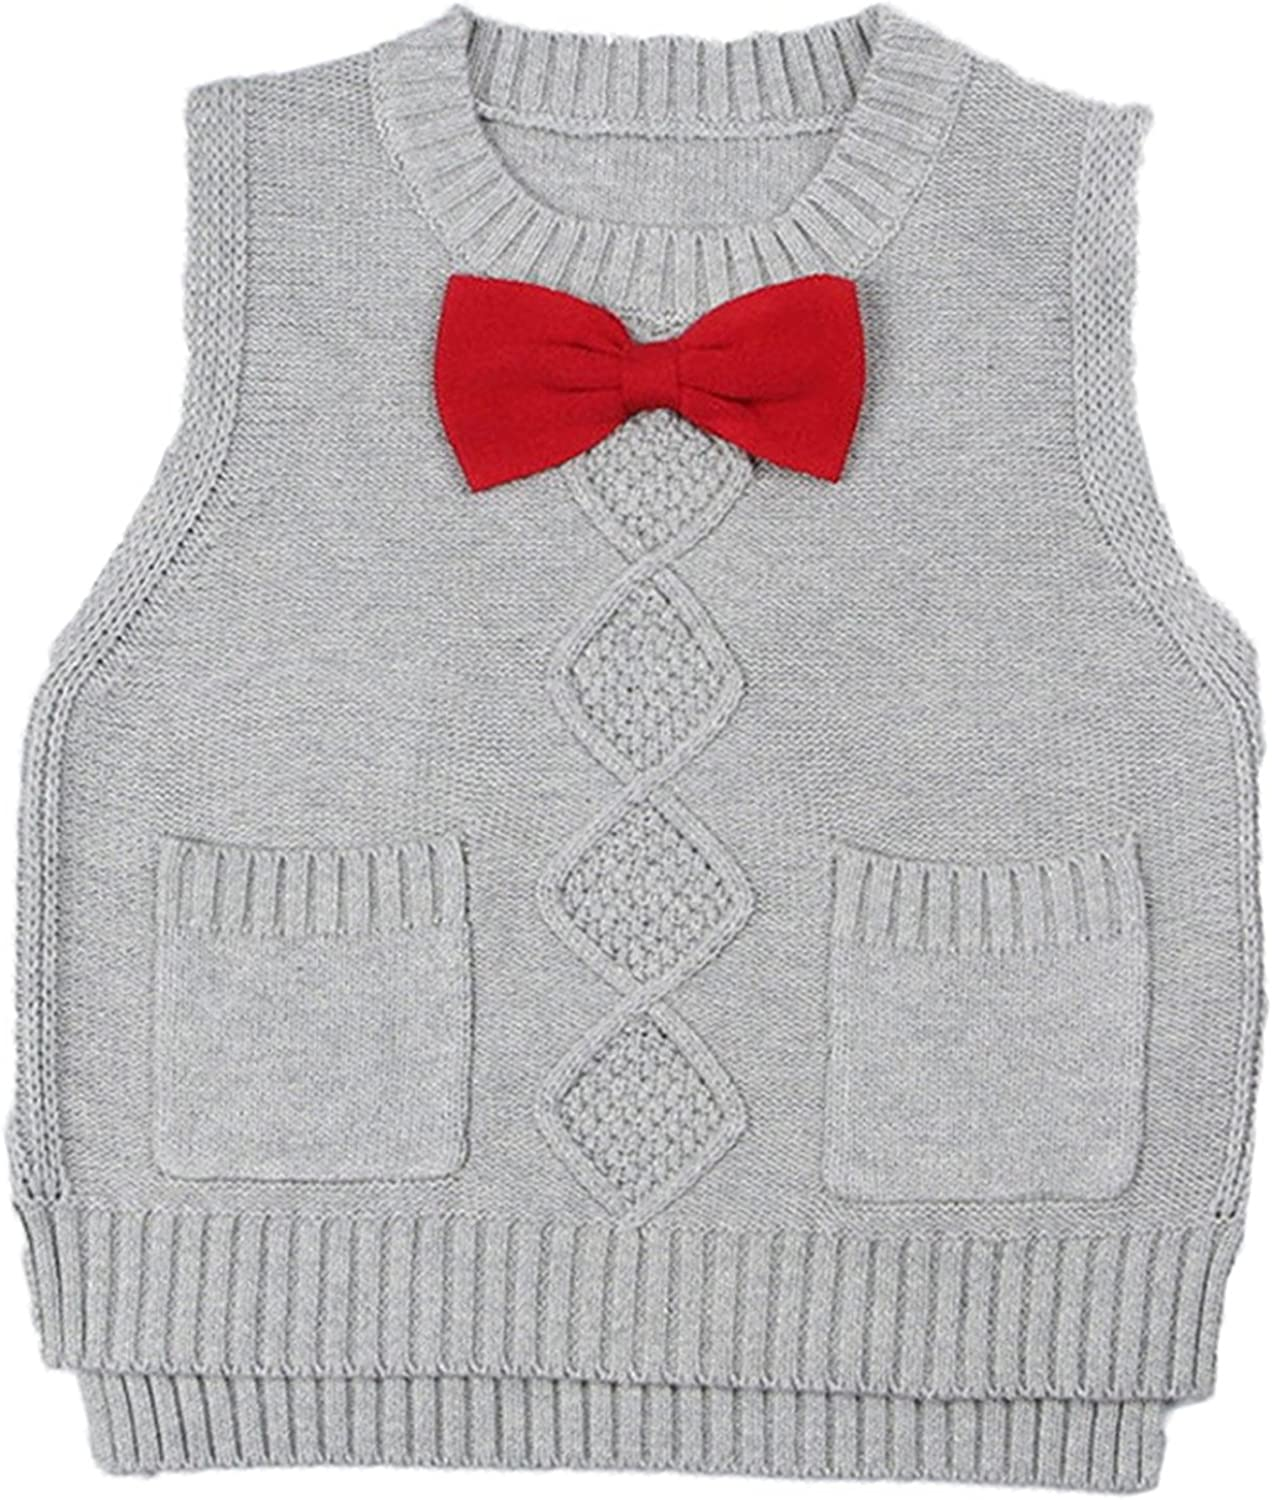 Jojobaby Toddler Baby Boys Girls Cable Knit Vest Cotton Round Neck Fine Knit Pullover Sweater